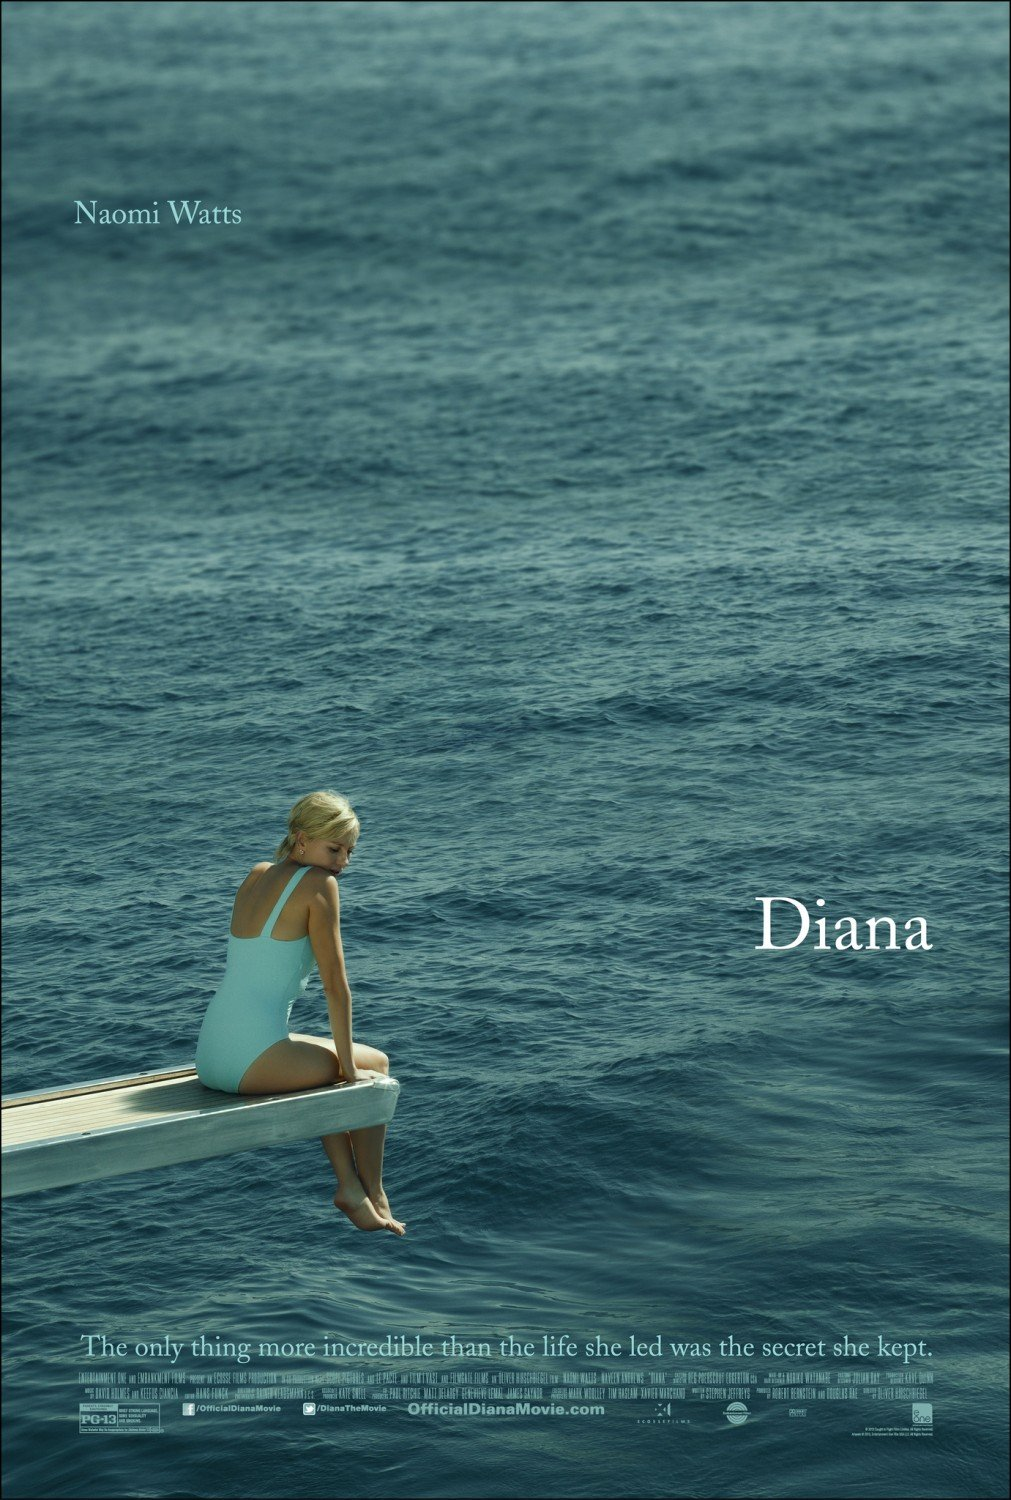 Poster Lab: Diana, with Naomi Watts Set Adrift Yet Again